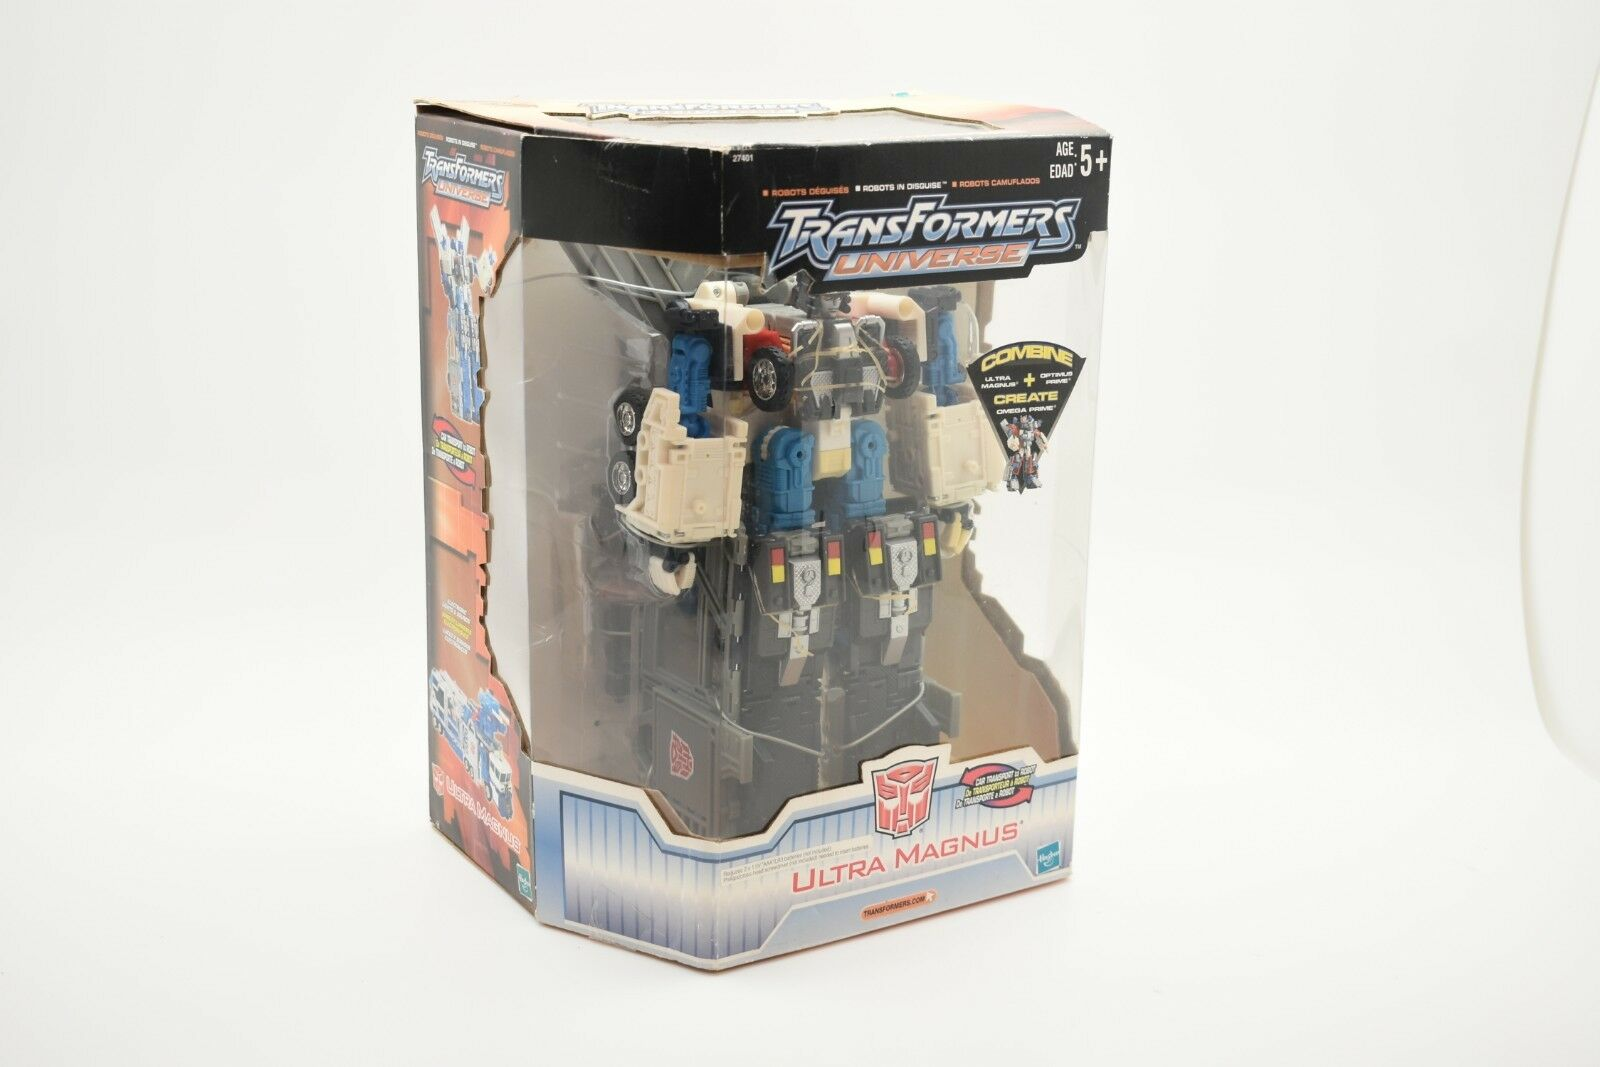 TRANSFORMERS UNIVERSE ULTRA MAGNUS MISB SEALED NEW RARE 2003